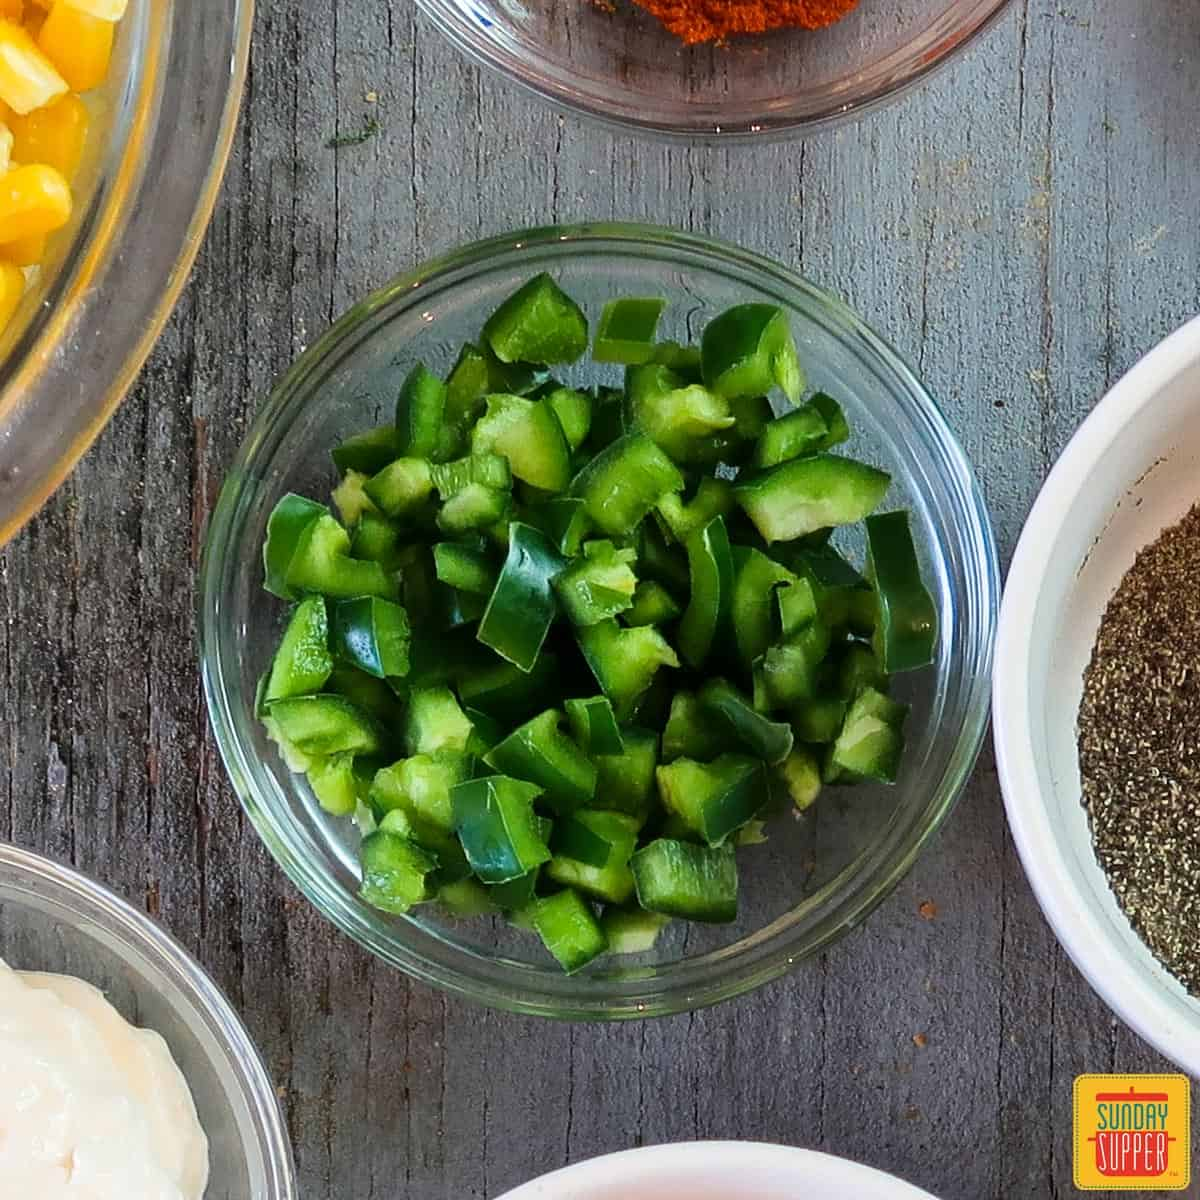 A glass bowl of diced jalapeno to show you how to cut a jalapeno